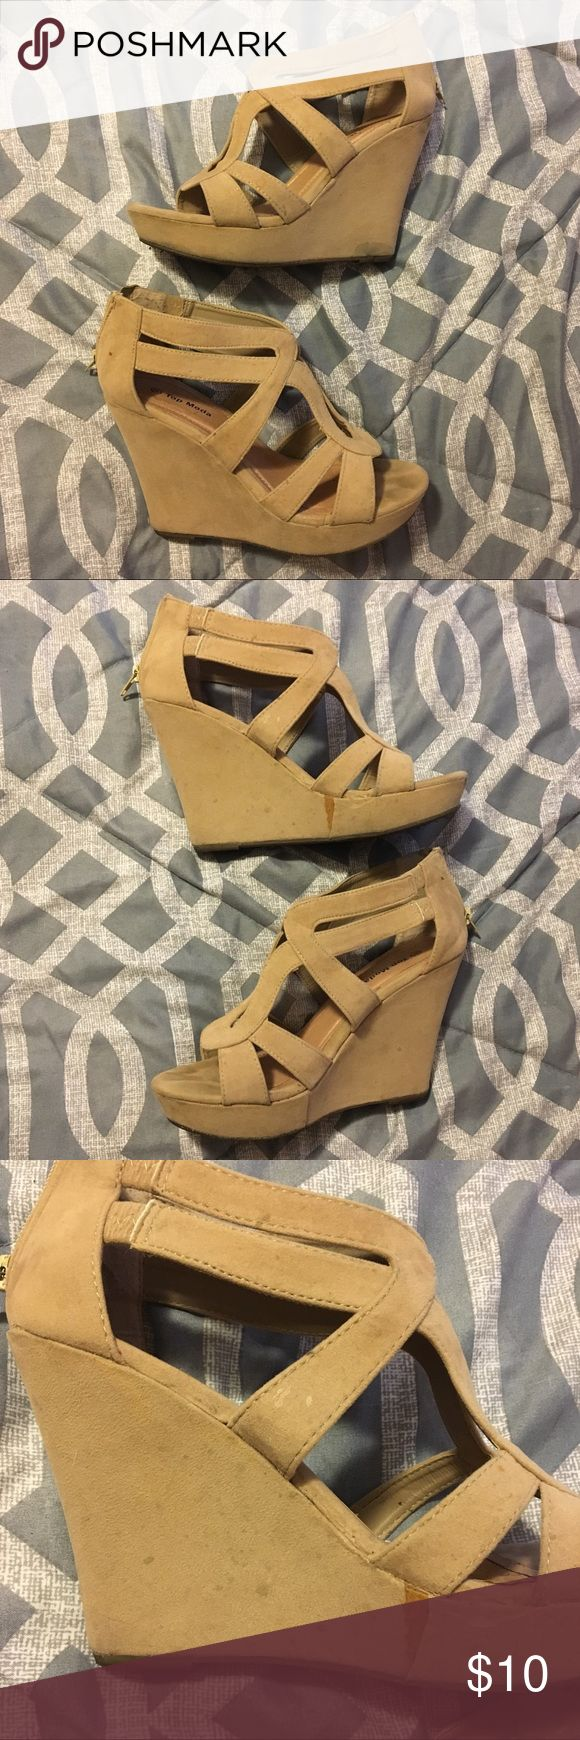 Nude/Beige Strappy Wedges Super cute beige wedges from Urban OG. They've definitely been worn and have a few stains (they may be cleanable) and rips, but still have a lot of life left! They fit true to size, have a zip up on the back, and are super comfortable! Very flattering shoe! Top Moda Shoes Wedges